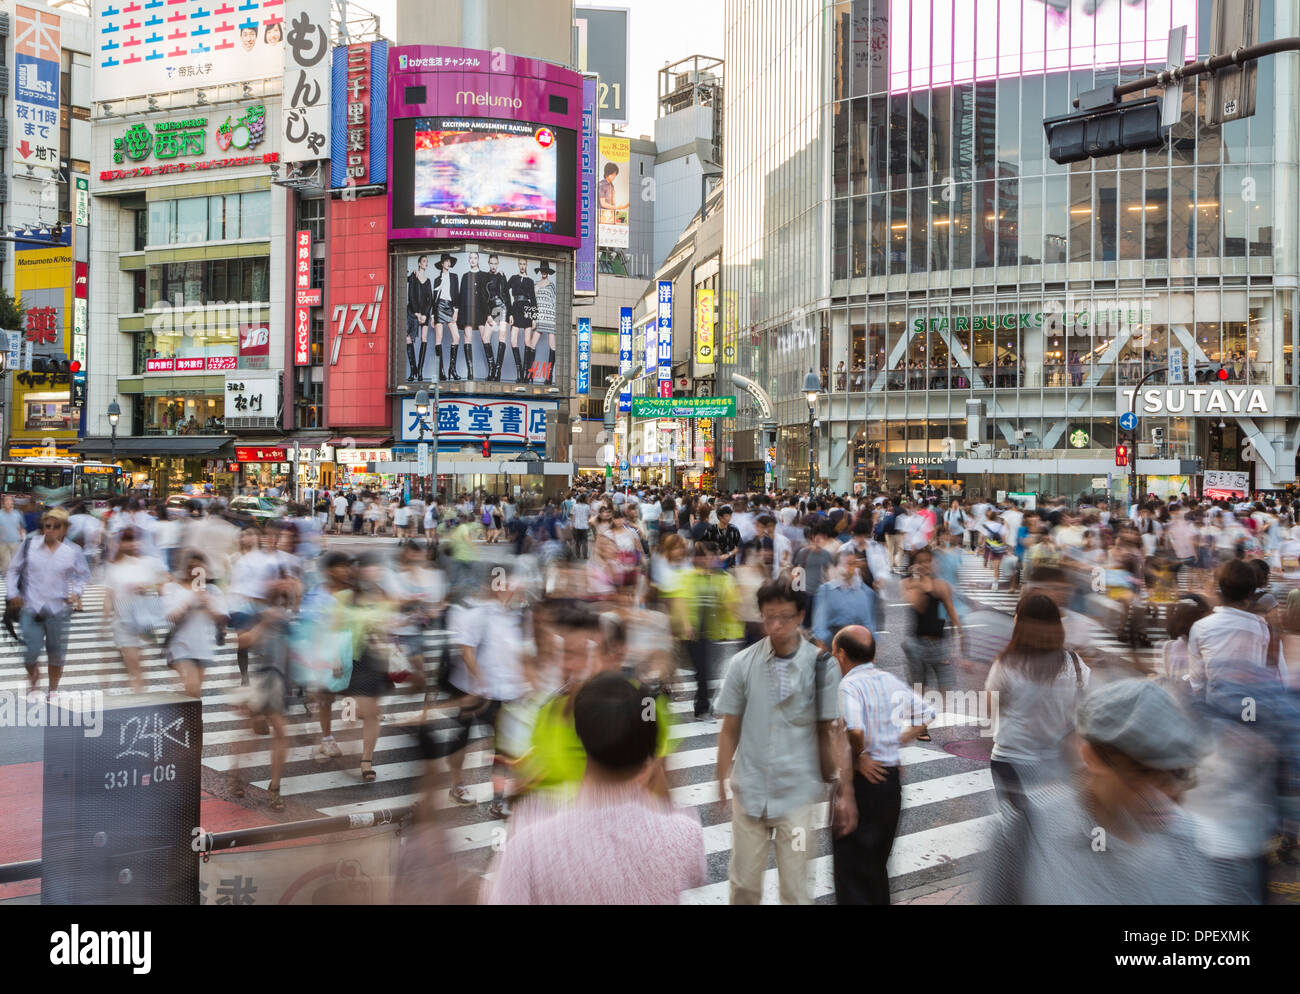 People capture with motion blur in the world famous Shibuya crossing in Tokyo, Japan - Stock Image